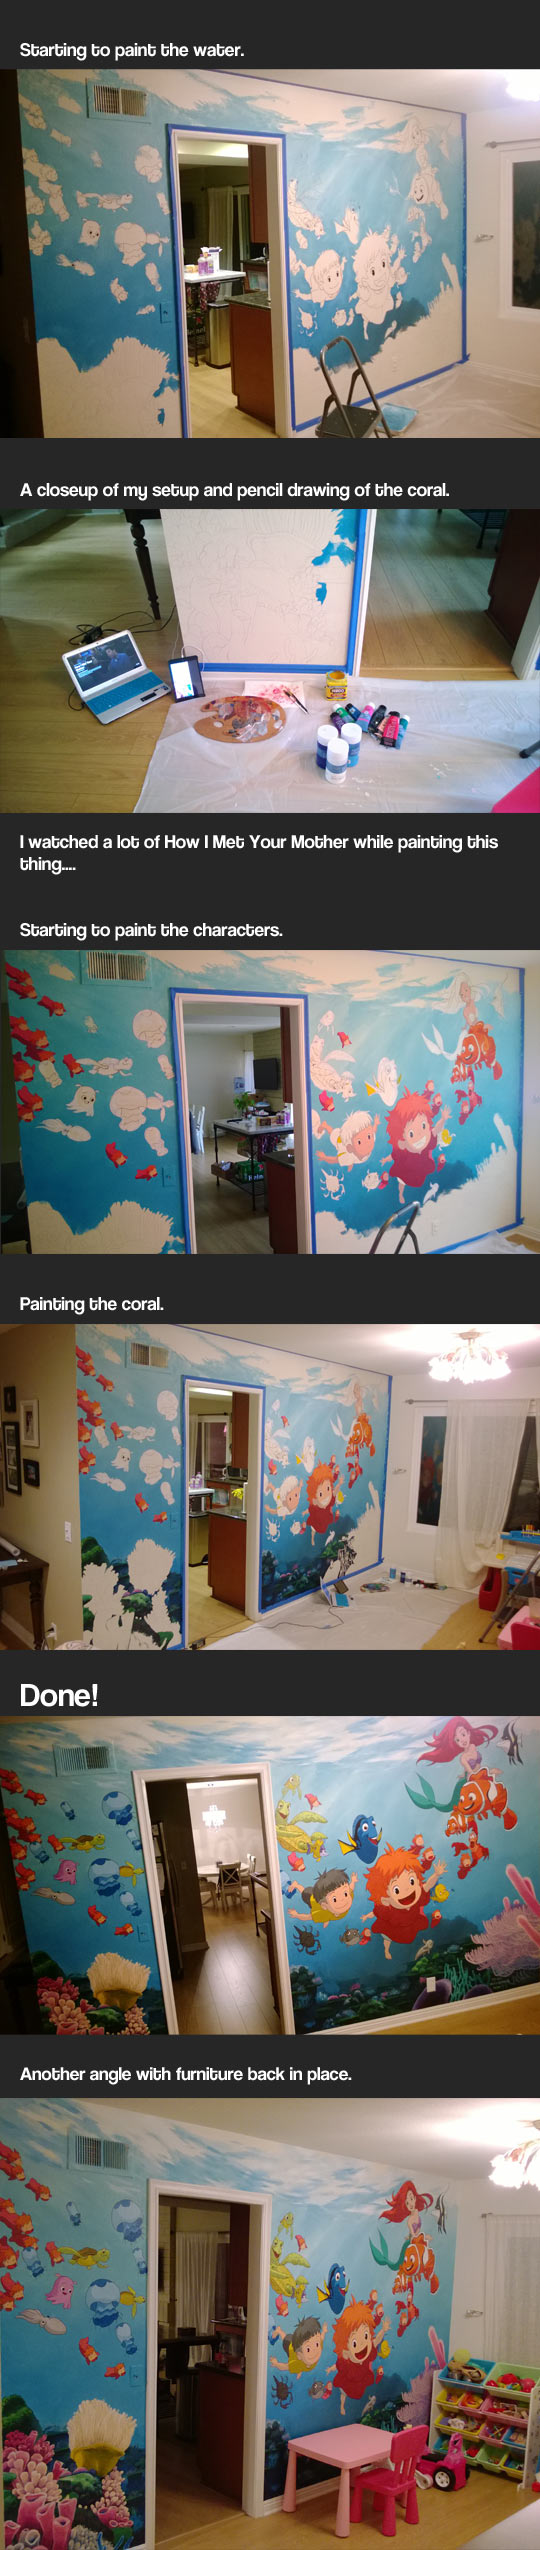 cool-undersea-mural-painting-Disney-wall